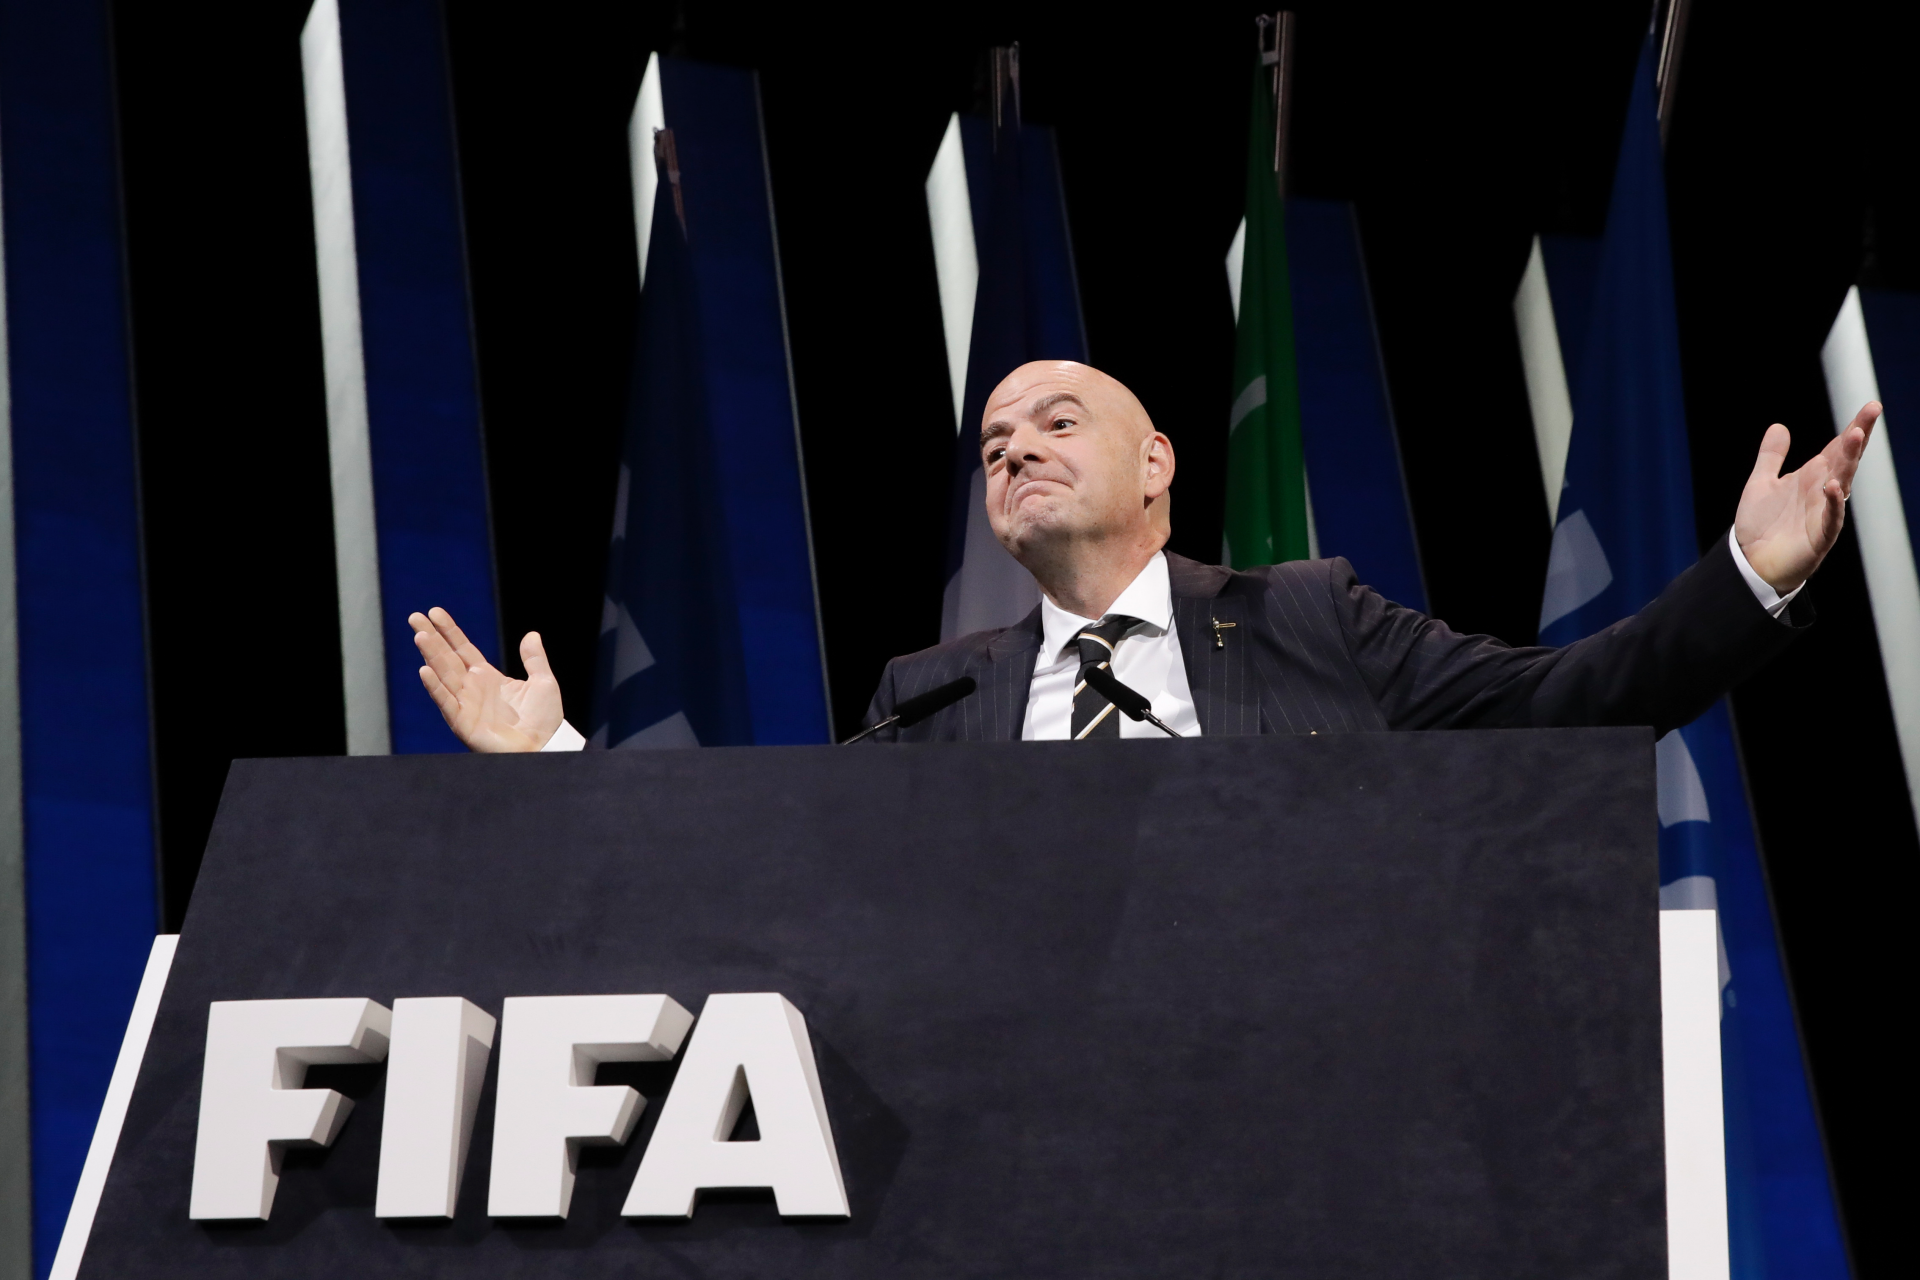 Westlake Legal Group ContentBroker_contentid-22a09f9d732a4321890263f8192f6315-1 Infantino says FIFA scandals gone, despite corruption cases ROB HARRIS and GRAHAM DUNBAR fox-news/world/world-regions/europe fox-news/world fnc/world fnc bc6aacdd-3786-547b-9bf3-82c6cba963a5 Associated Press article